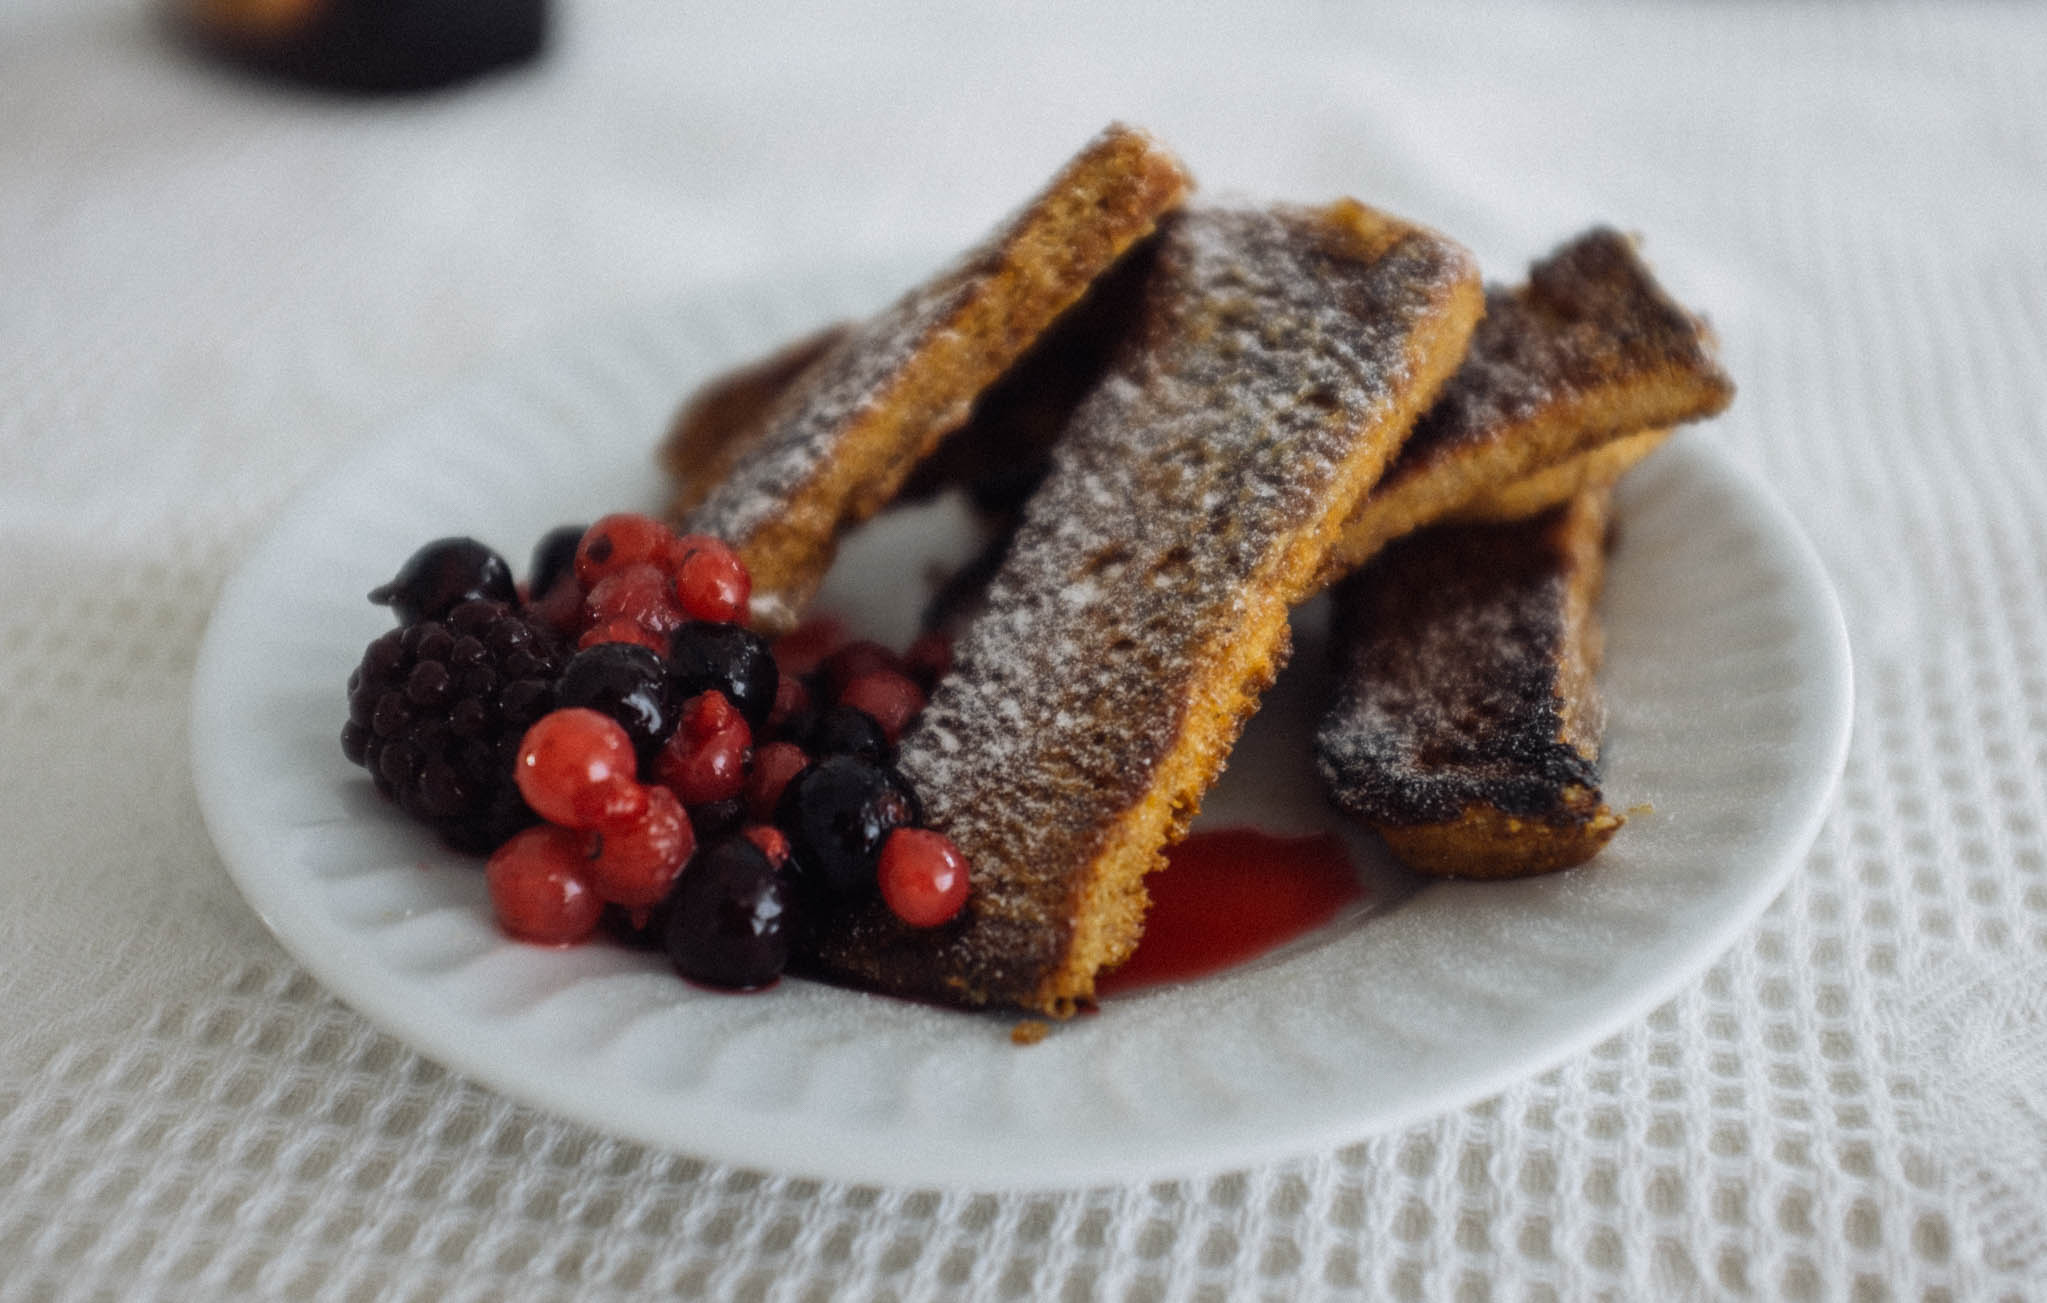 French toast and red berries.